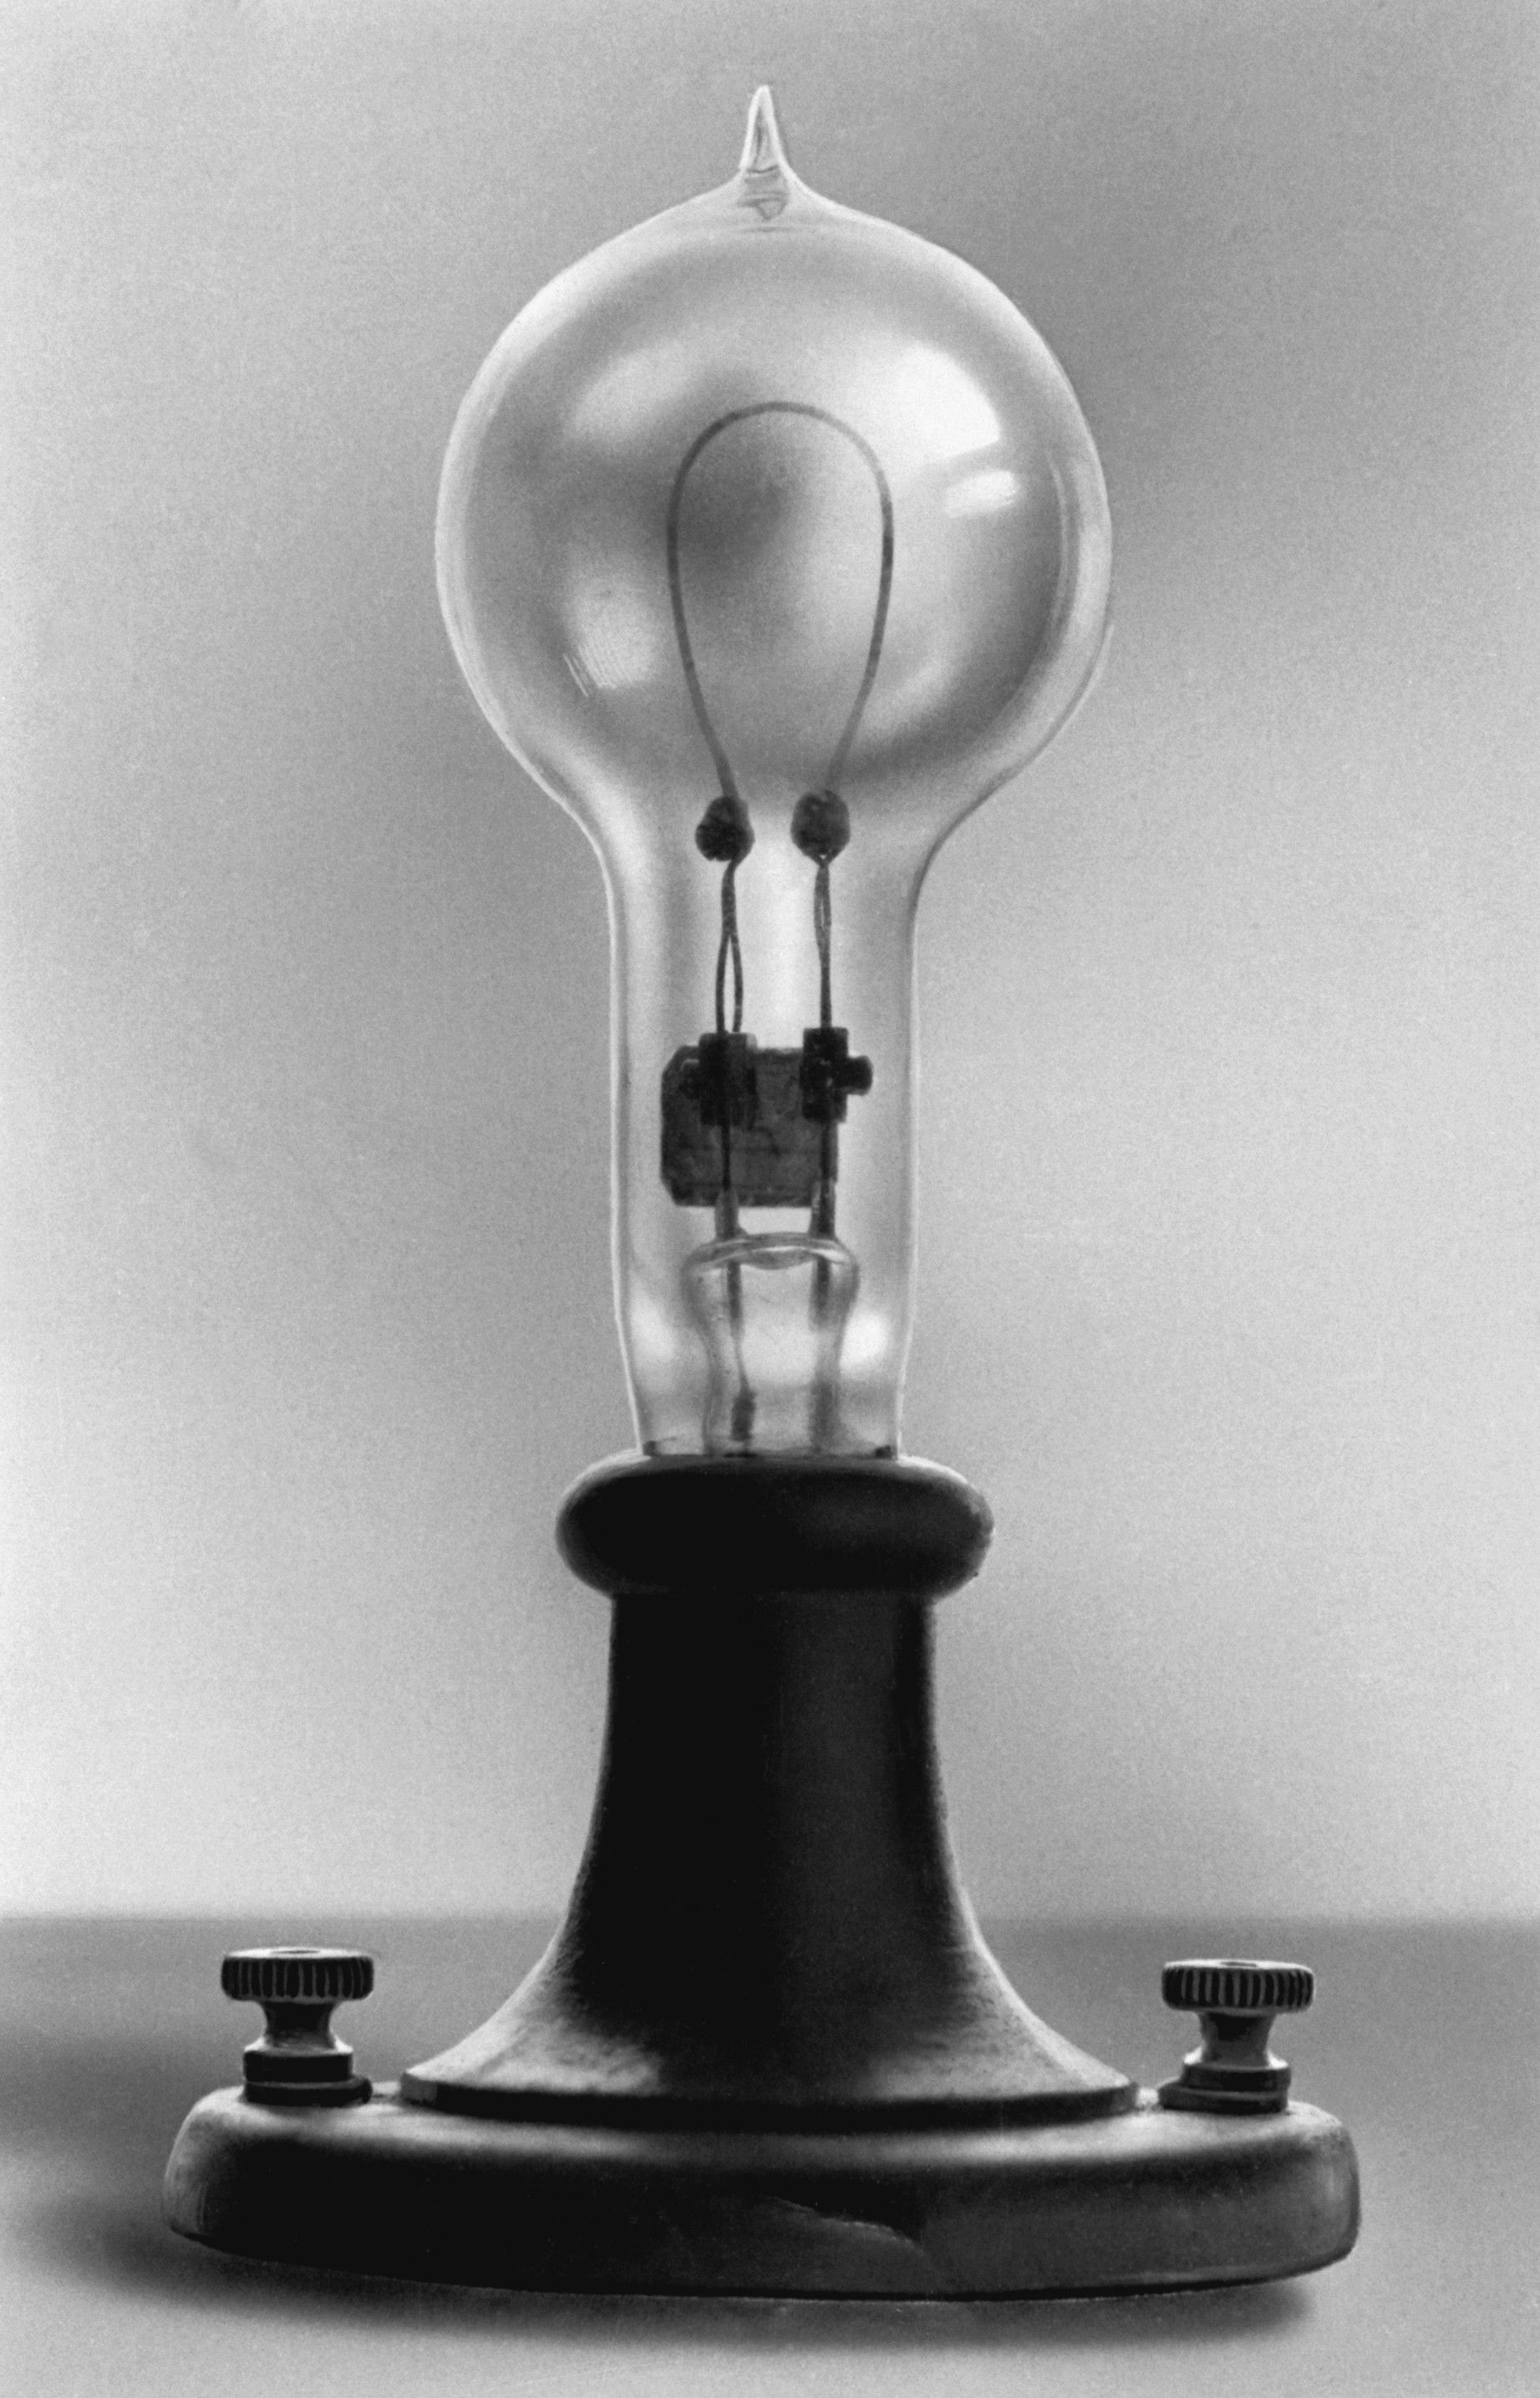 In The First Light Bulbs Lasted A Mere 150 Hours